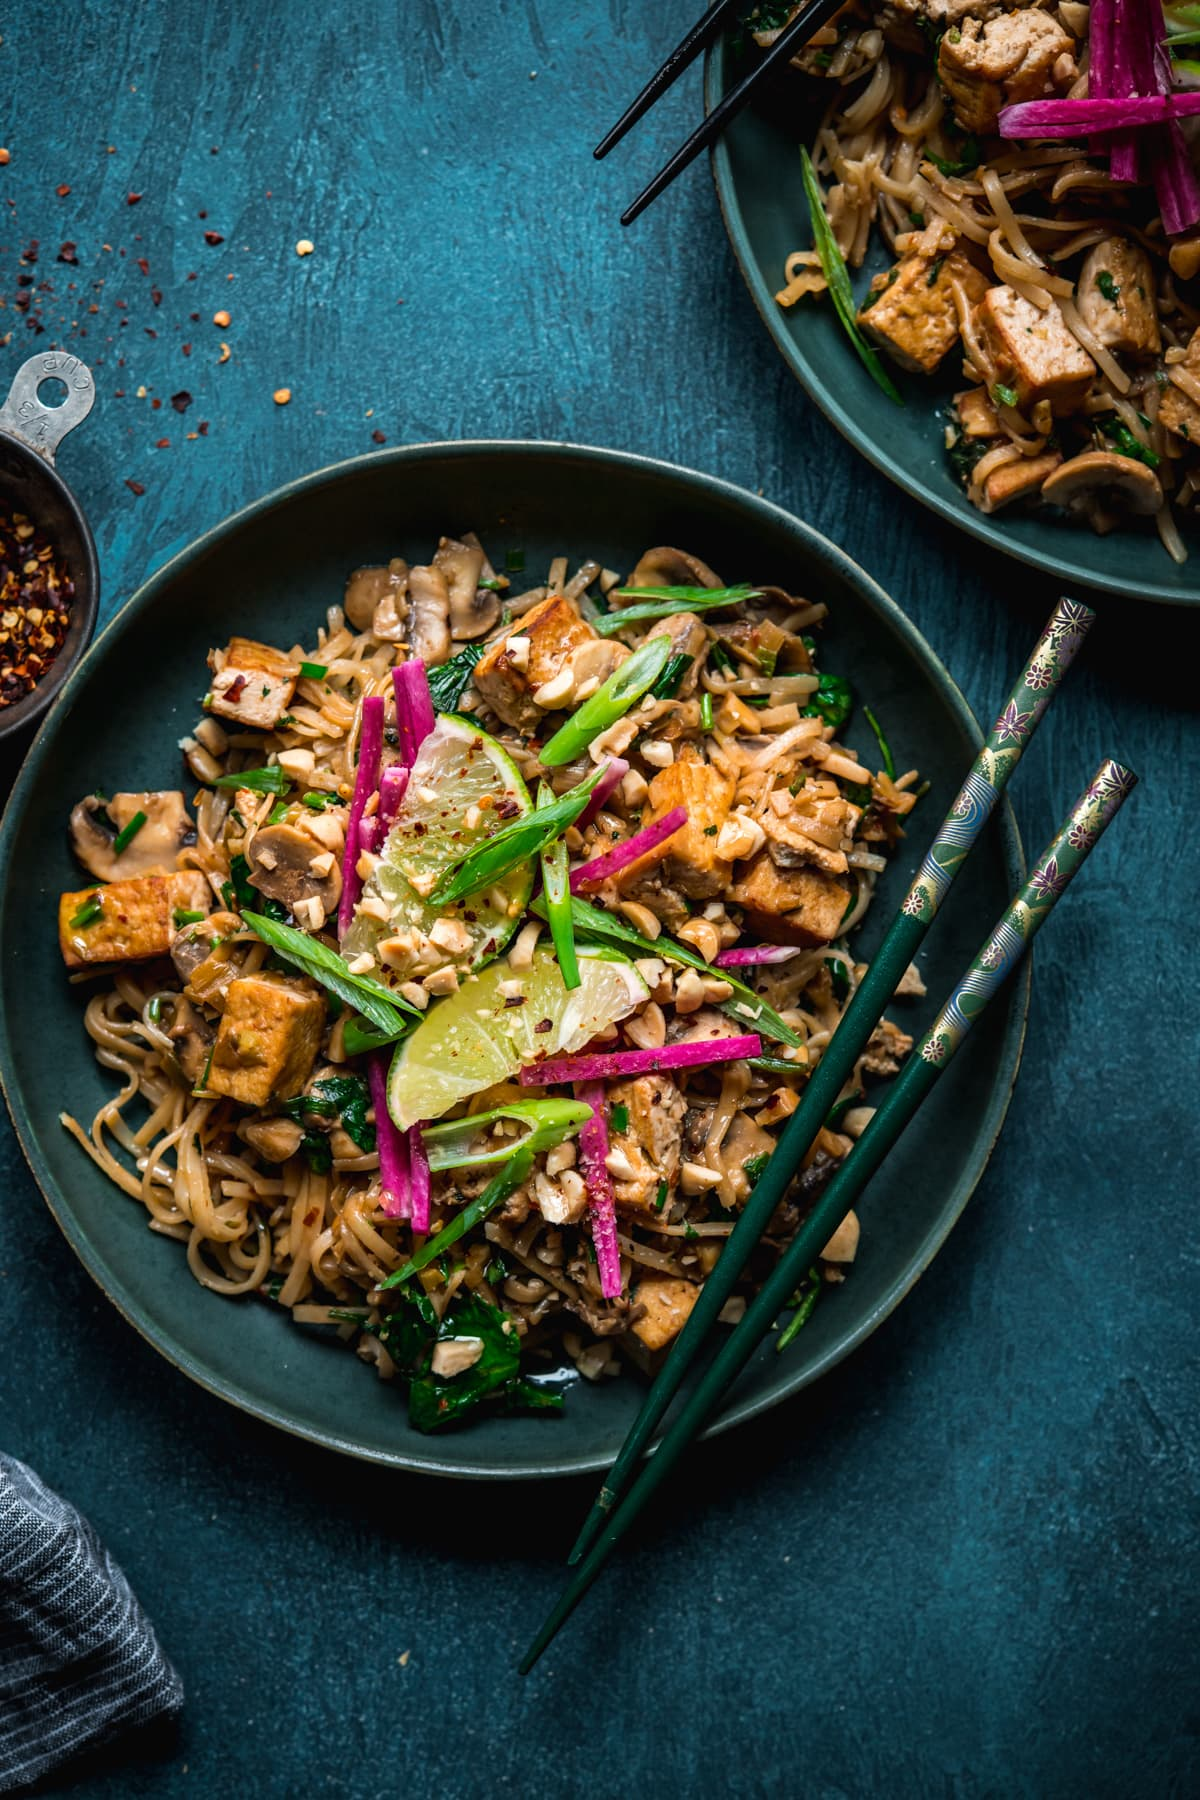 overhead view of vegan pad thai with tofu in a blue bowl with chopsticks.